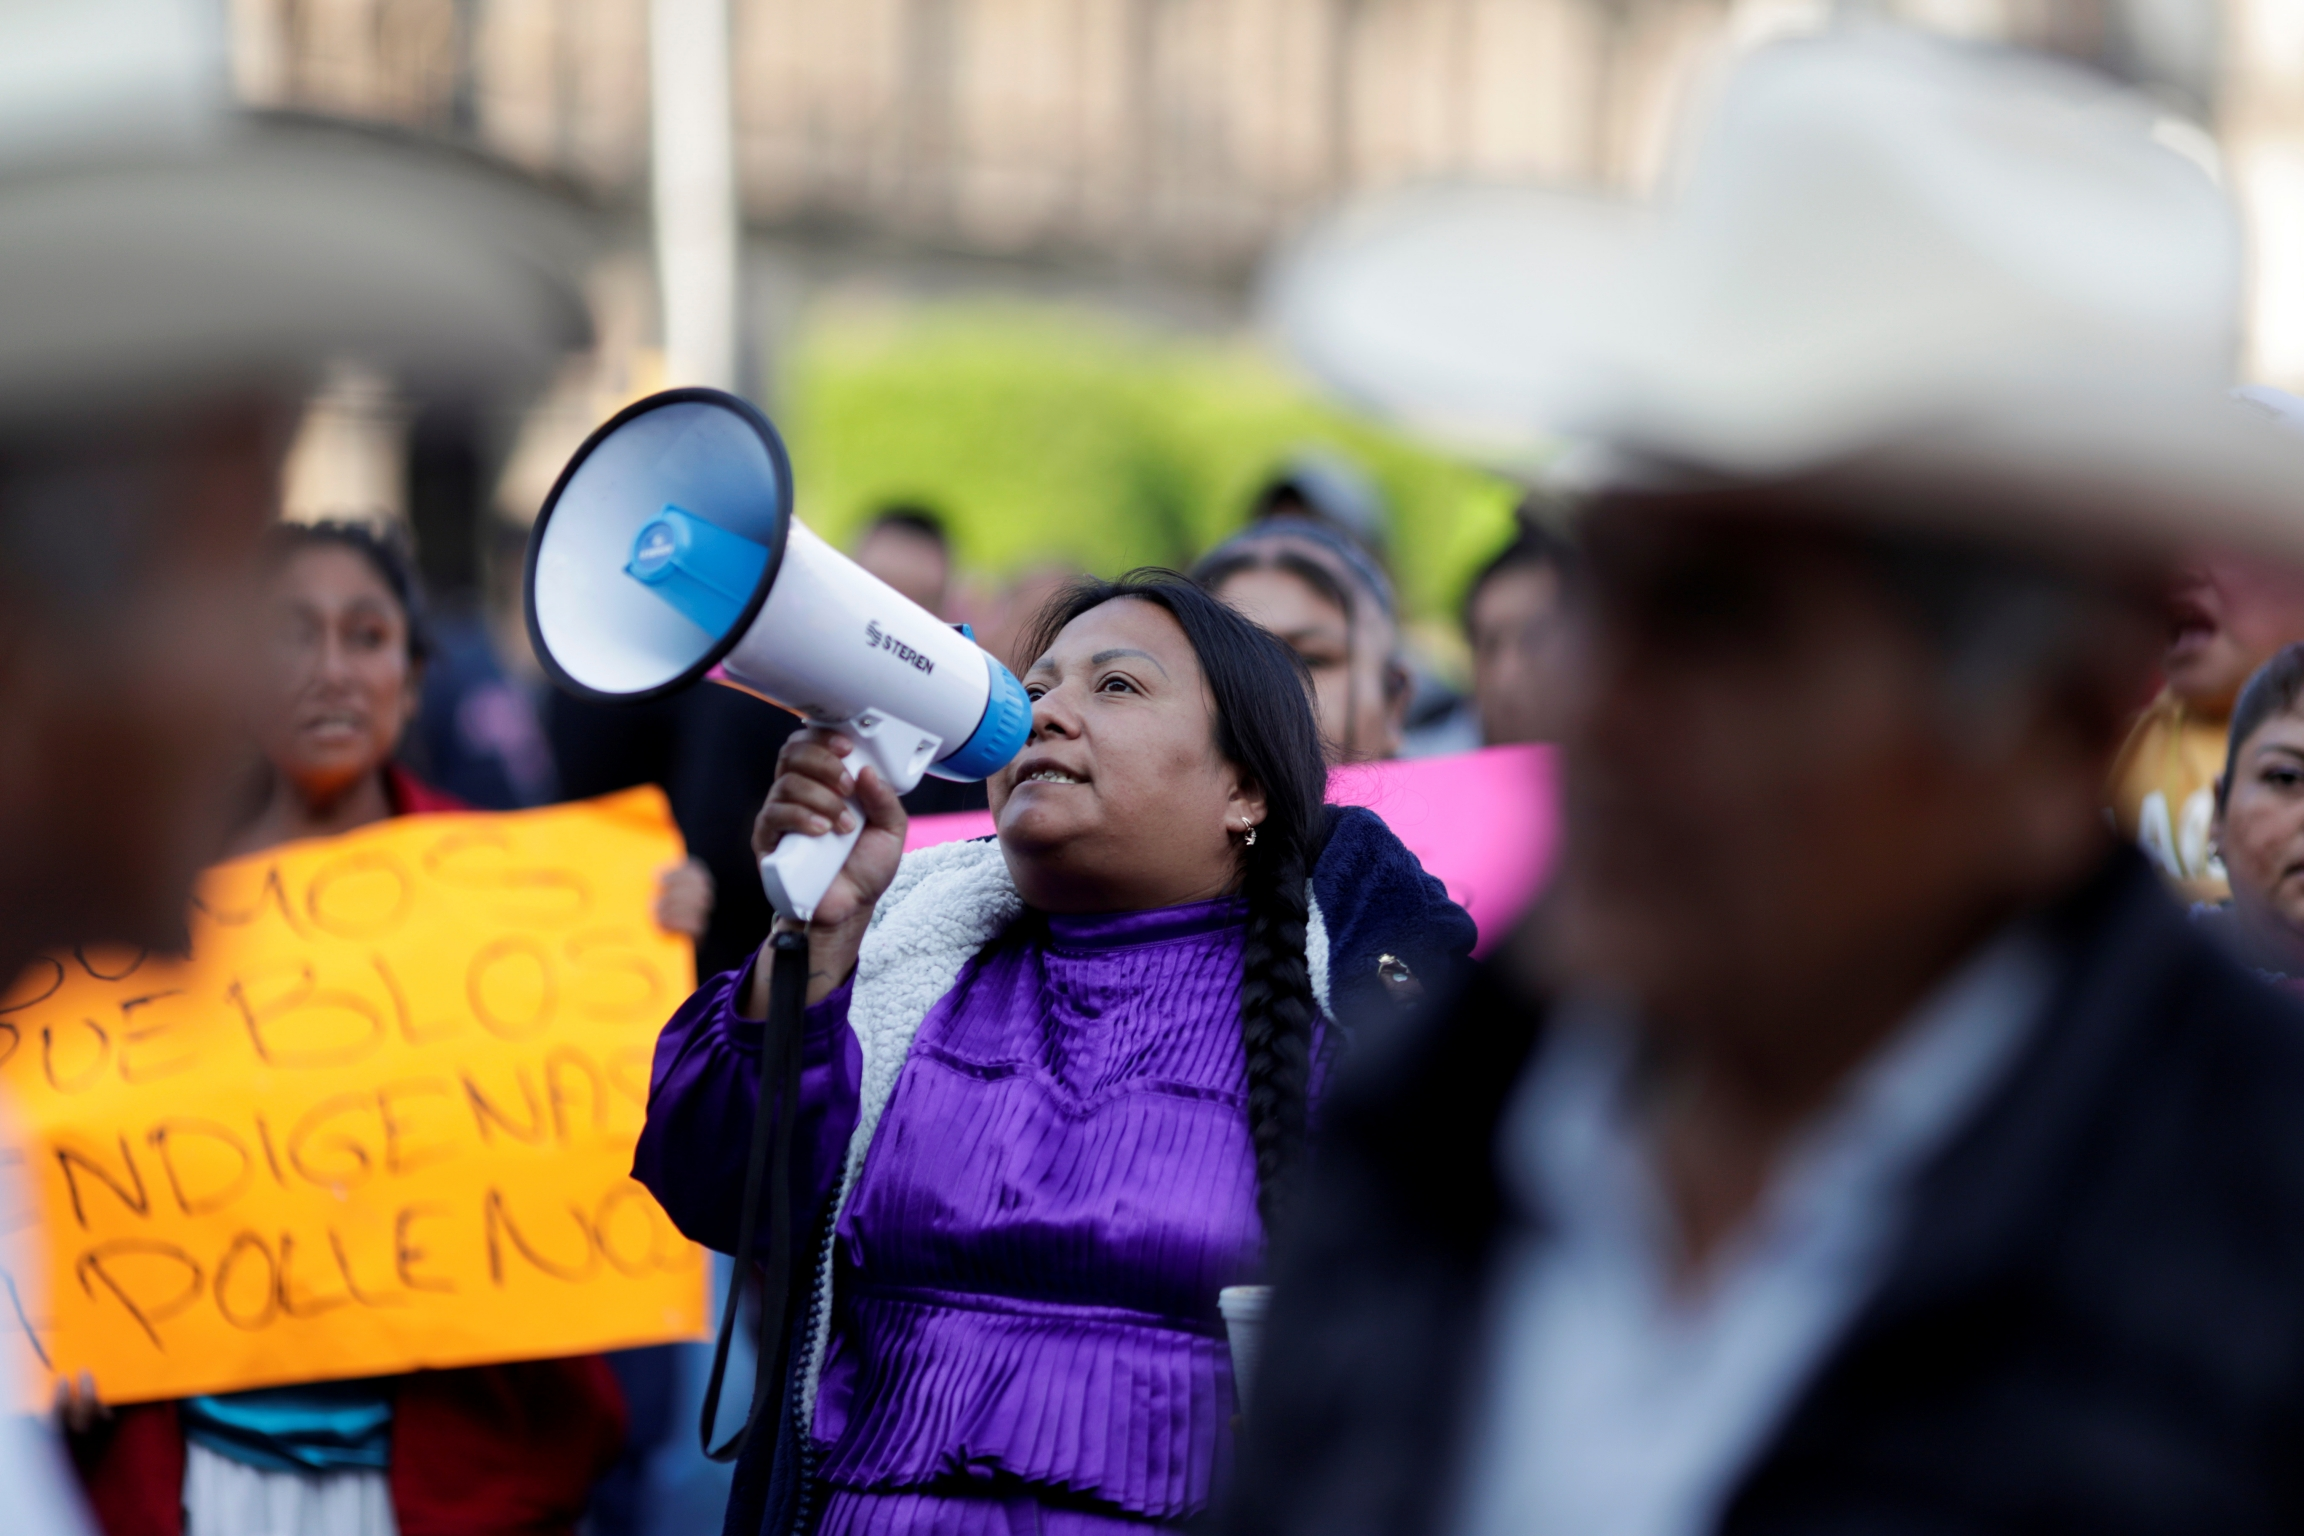 Oaxaca's artisans take part in a protest outside the National Palace to demand the federal government help for the loss of jobs and decrease in their labor services, after the Mexican government declared a health emergency and issued stricter regulations